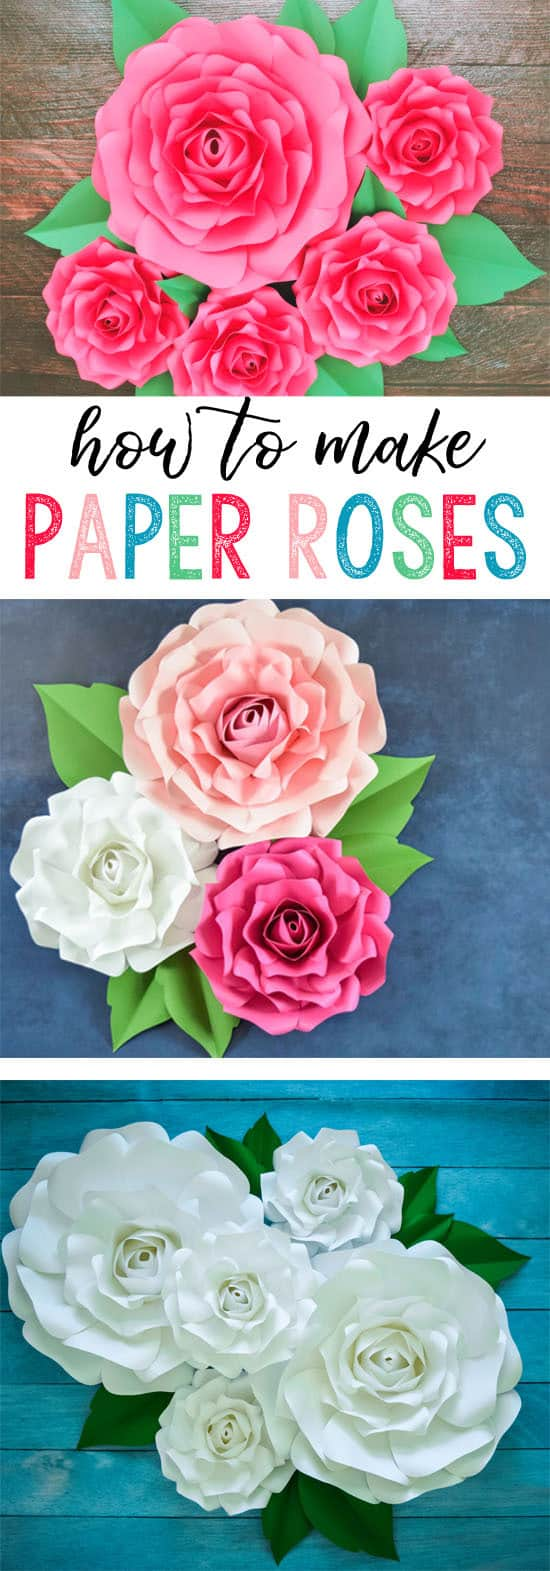 Giant paper flowers how to make paper garden roses with step by step giant paper flowers 2 mightylinksfo